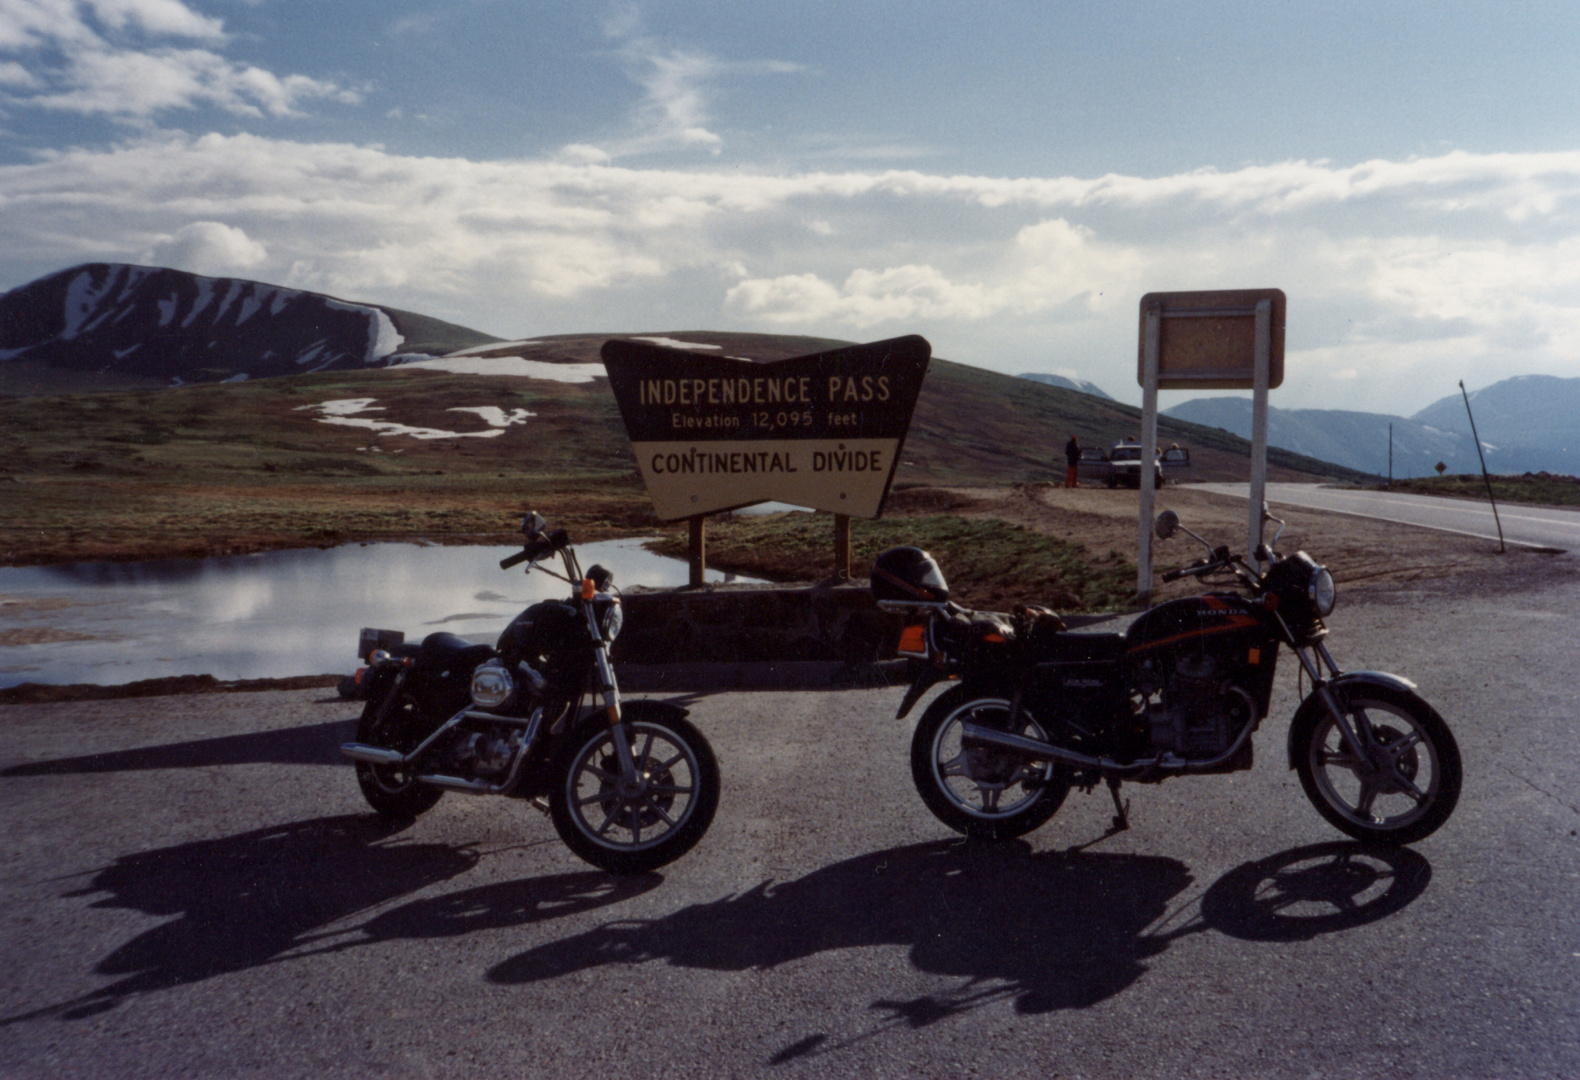 Continental Divide / Independence Pass